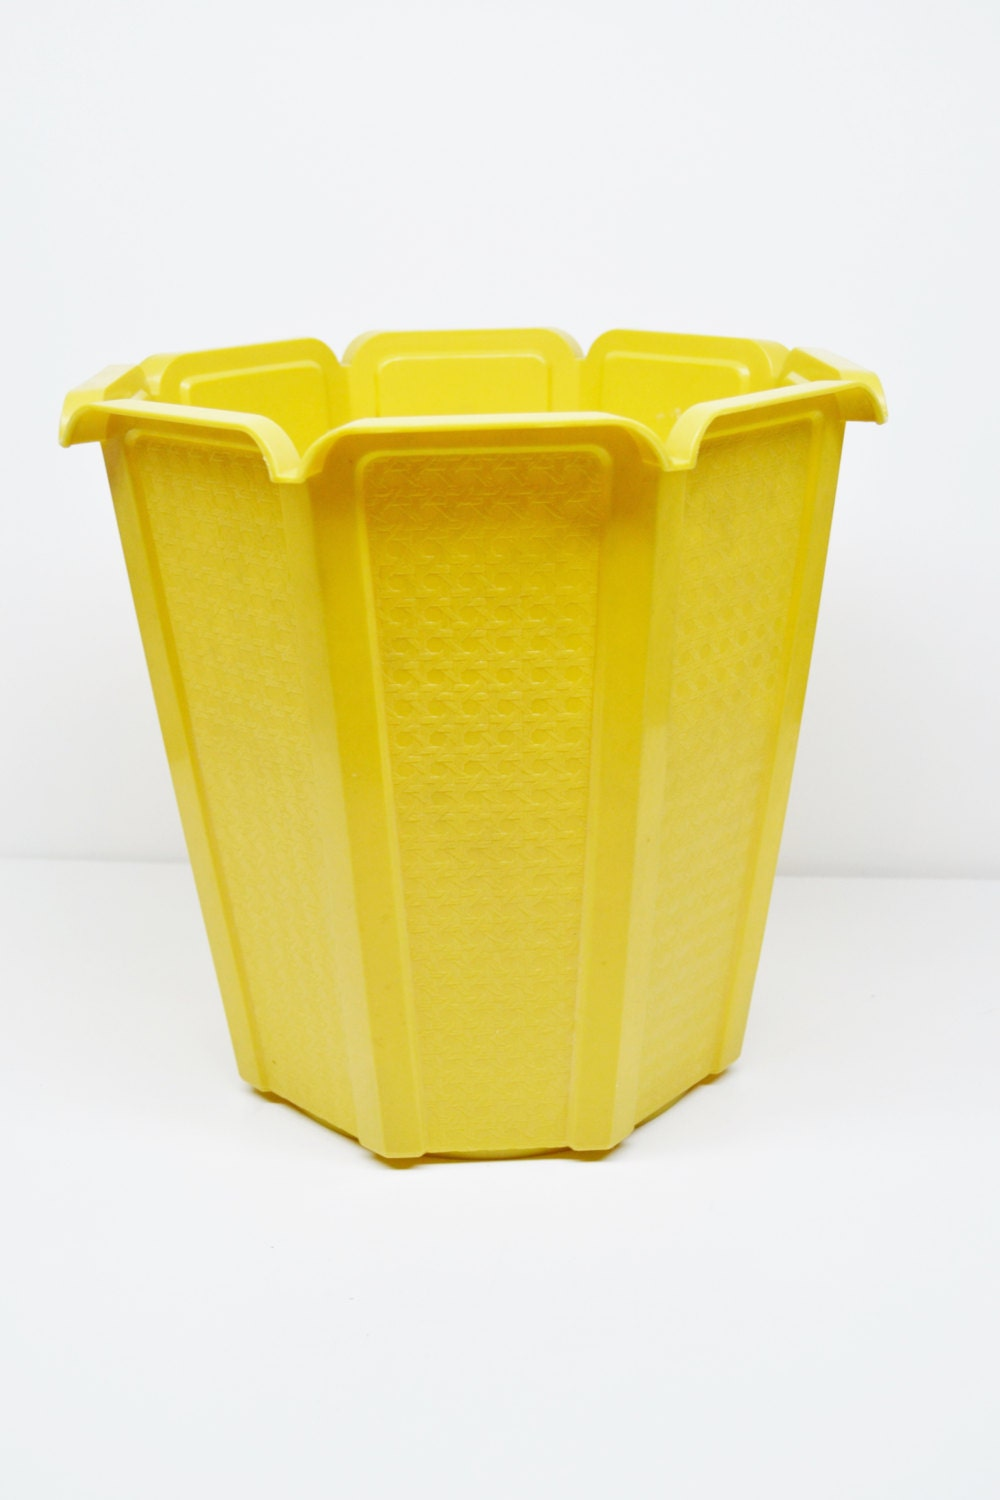 vintage yellow gold rubbermaid trash can by buckscountyvintageco